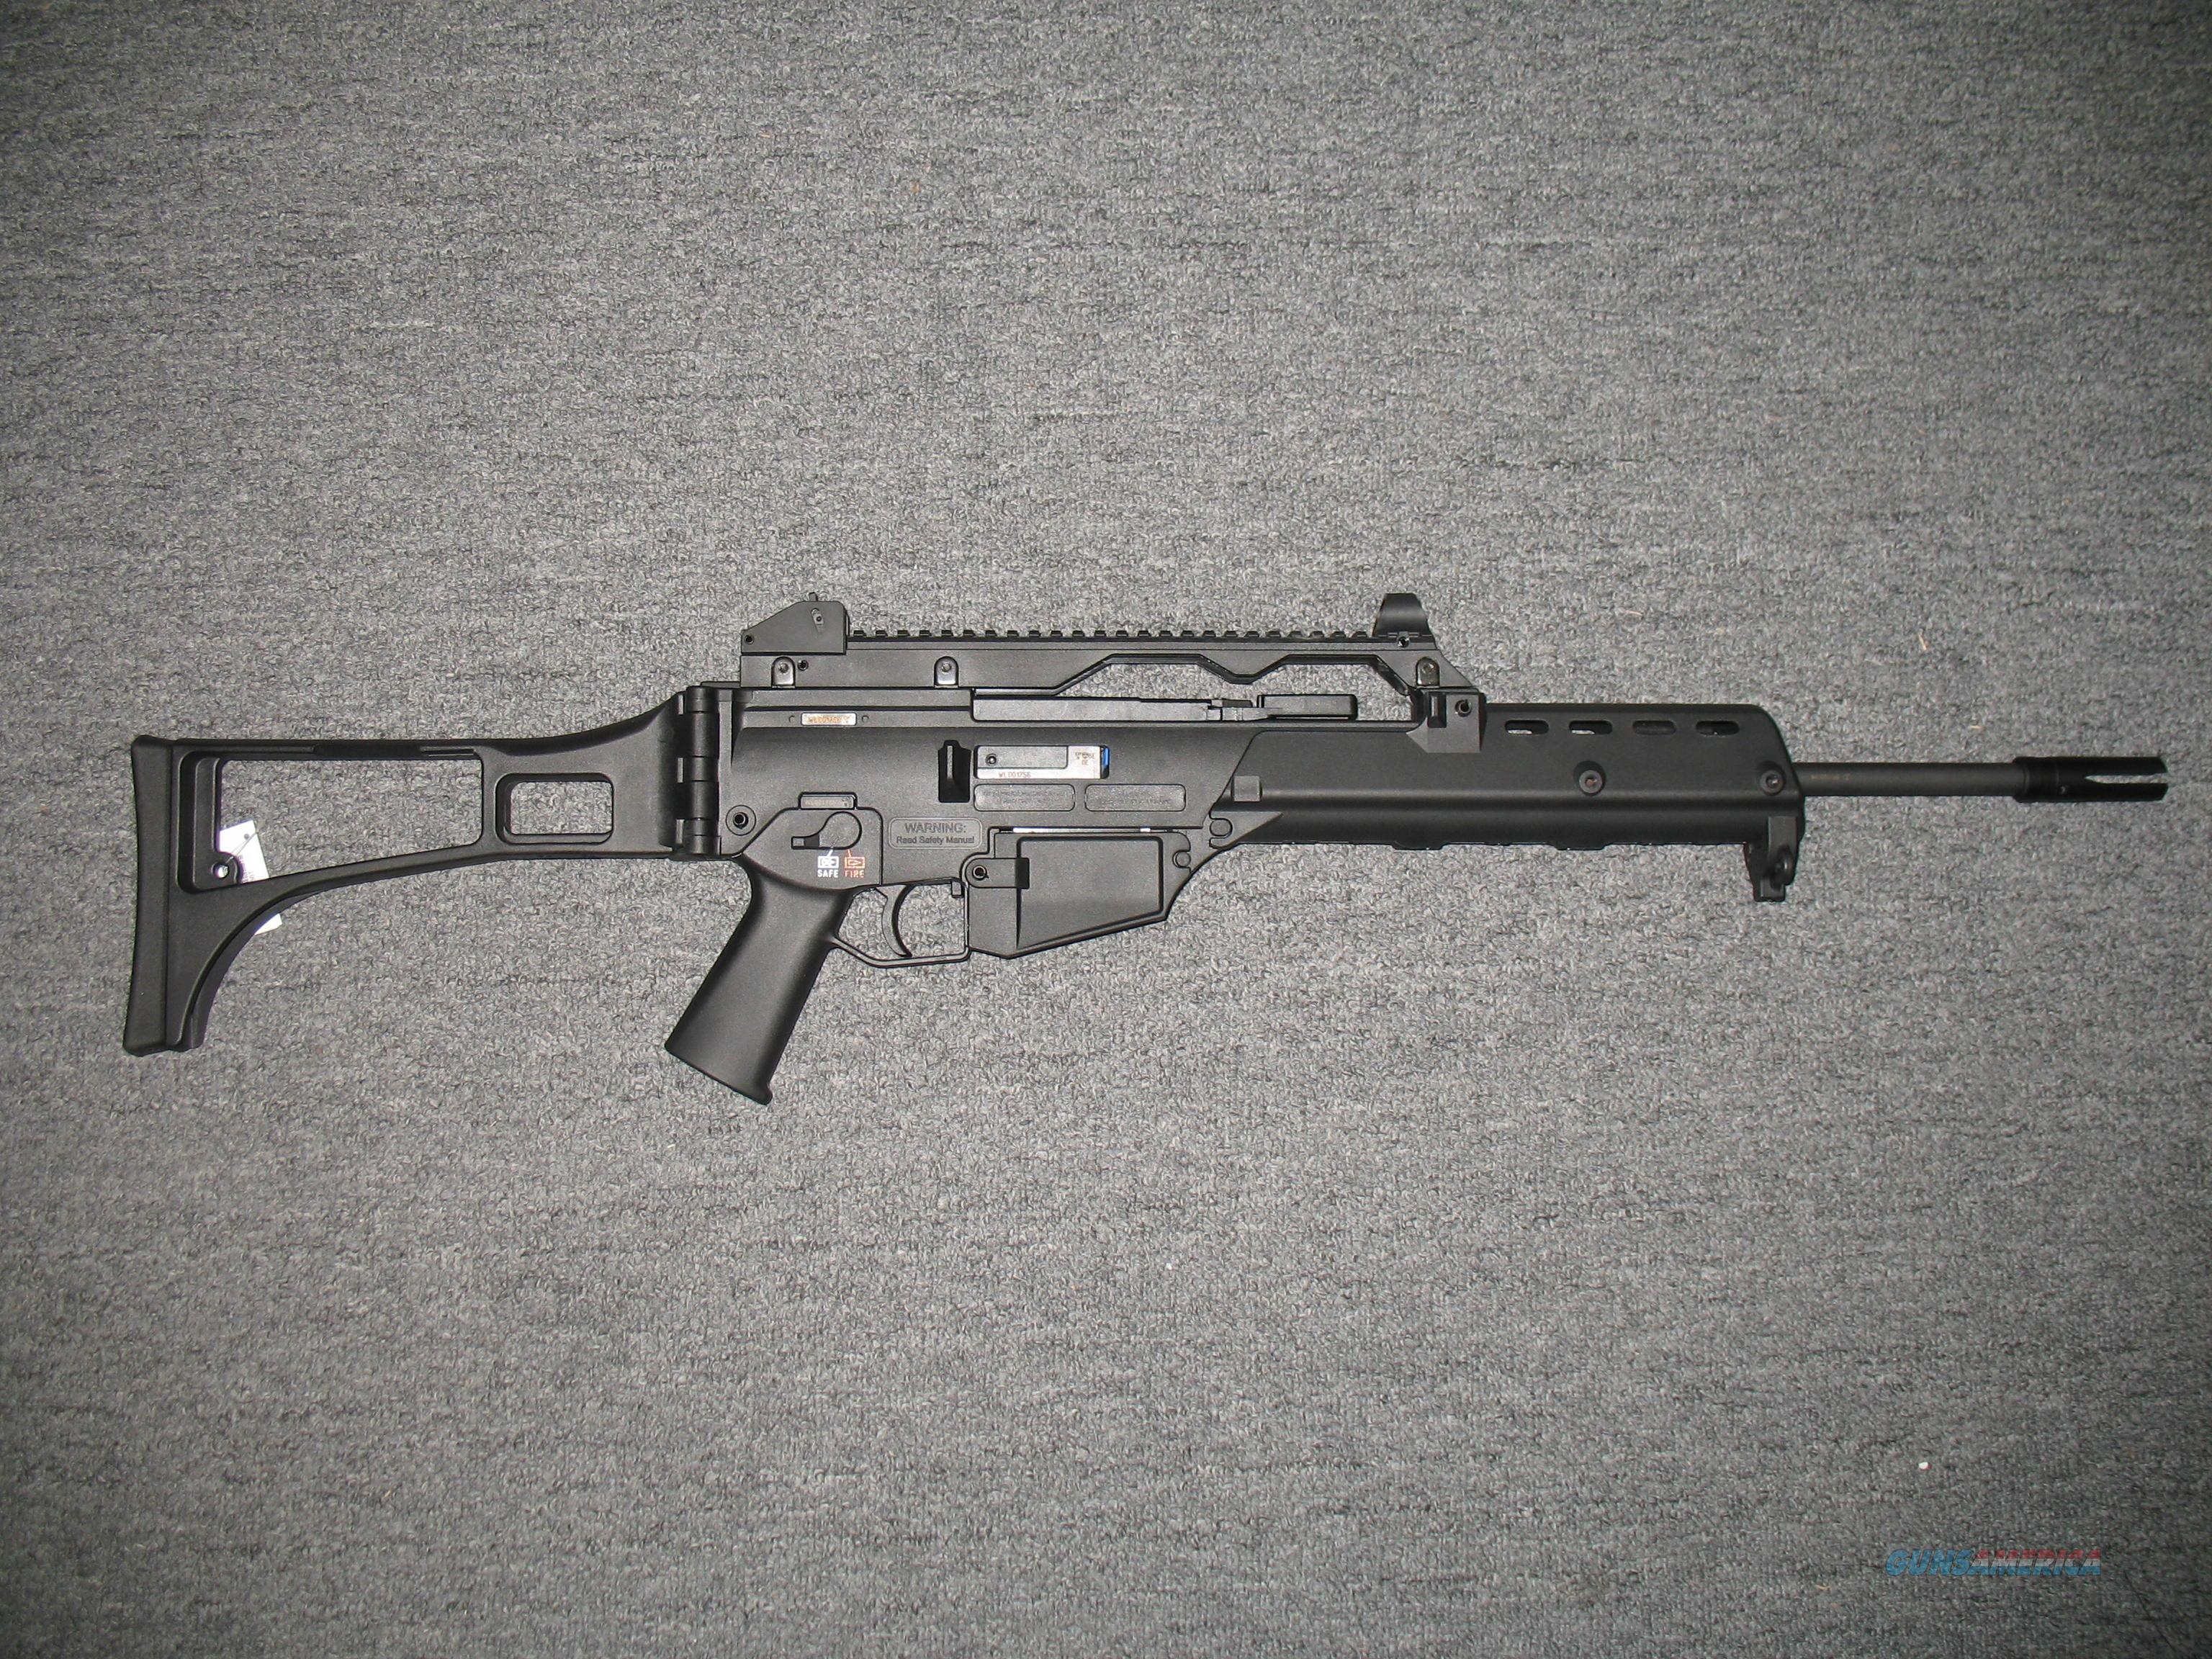 G36 .22lr  Guns > Rifles > Heckler & Koch Rifles > Tactical